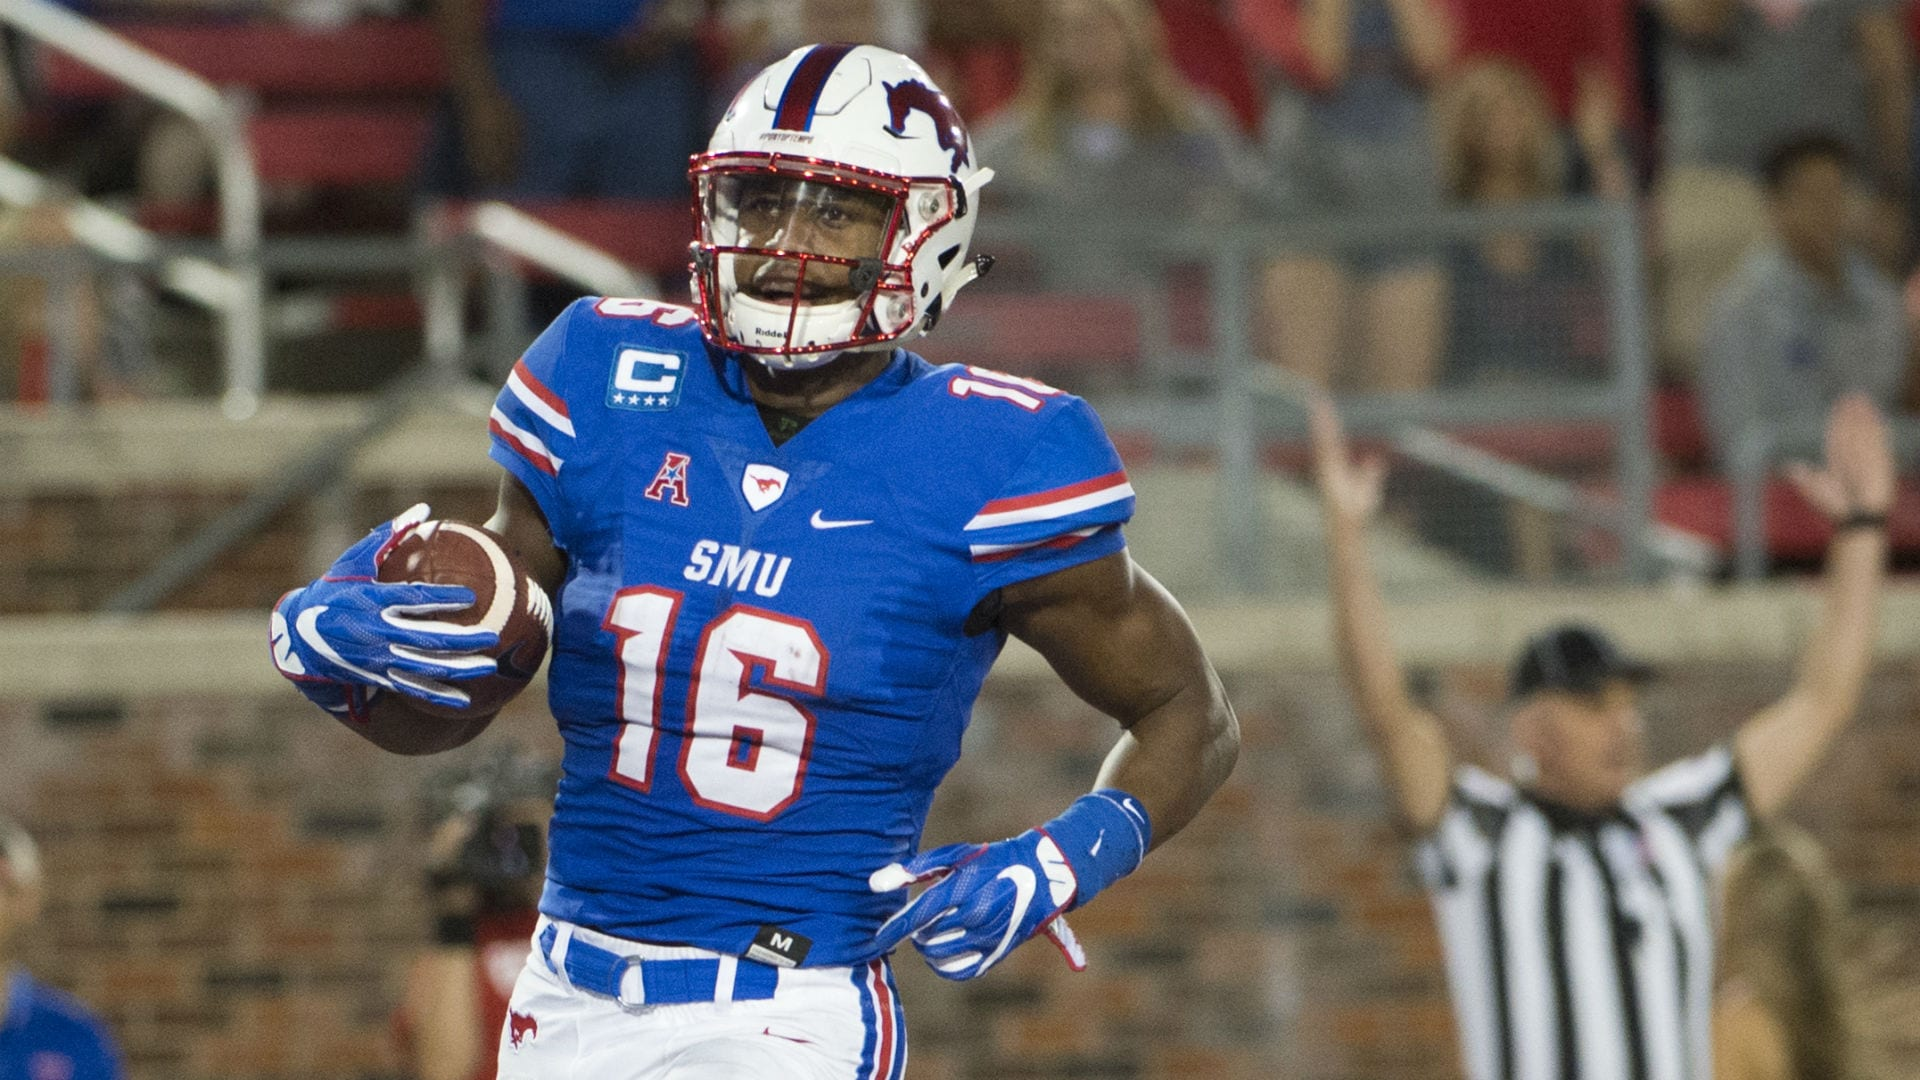 Louisiana Tech vs. SMU, Frisco Bowl 2017 live stream